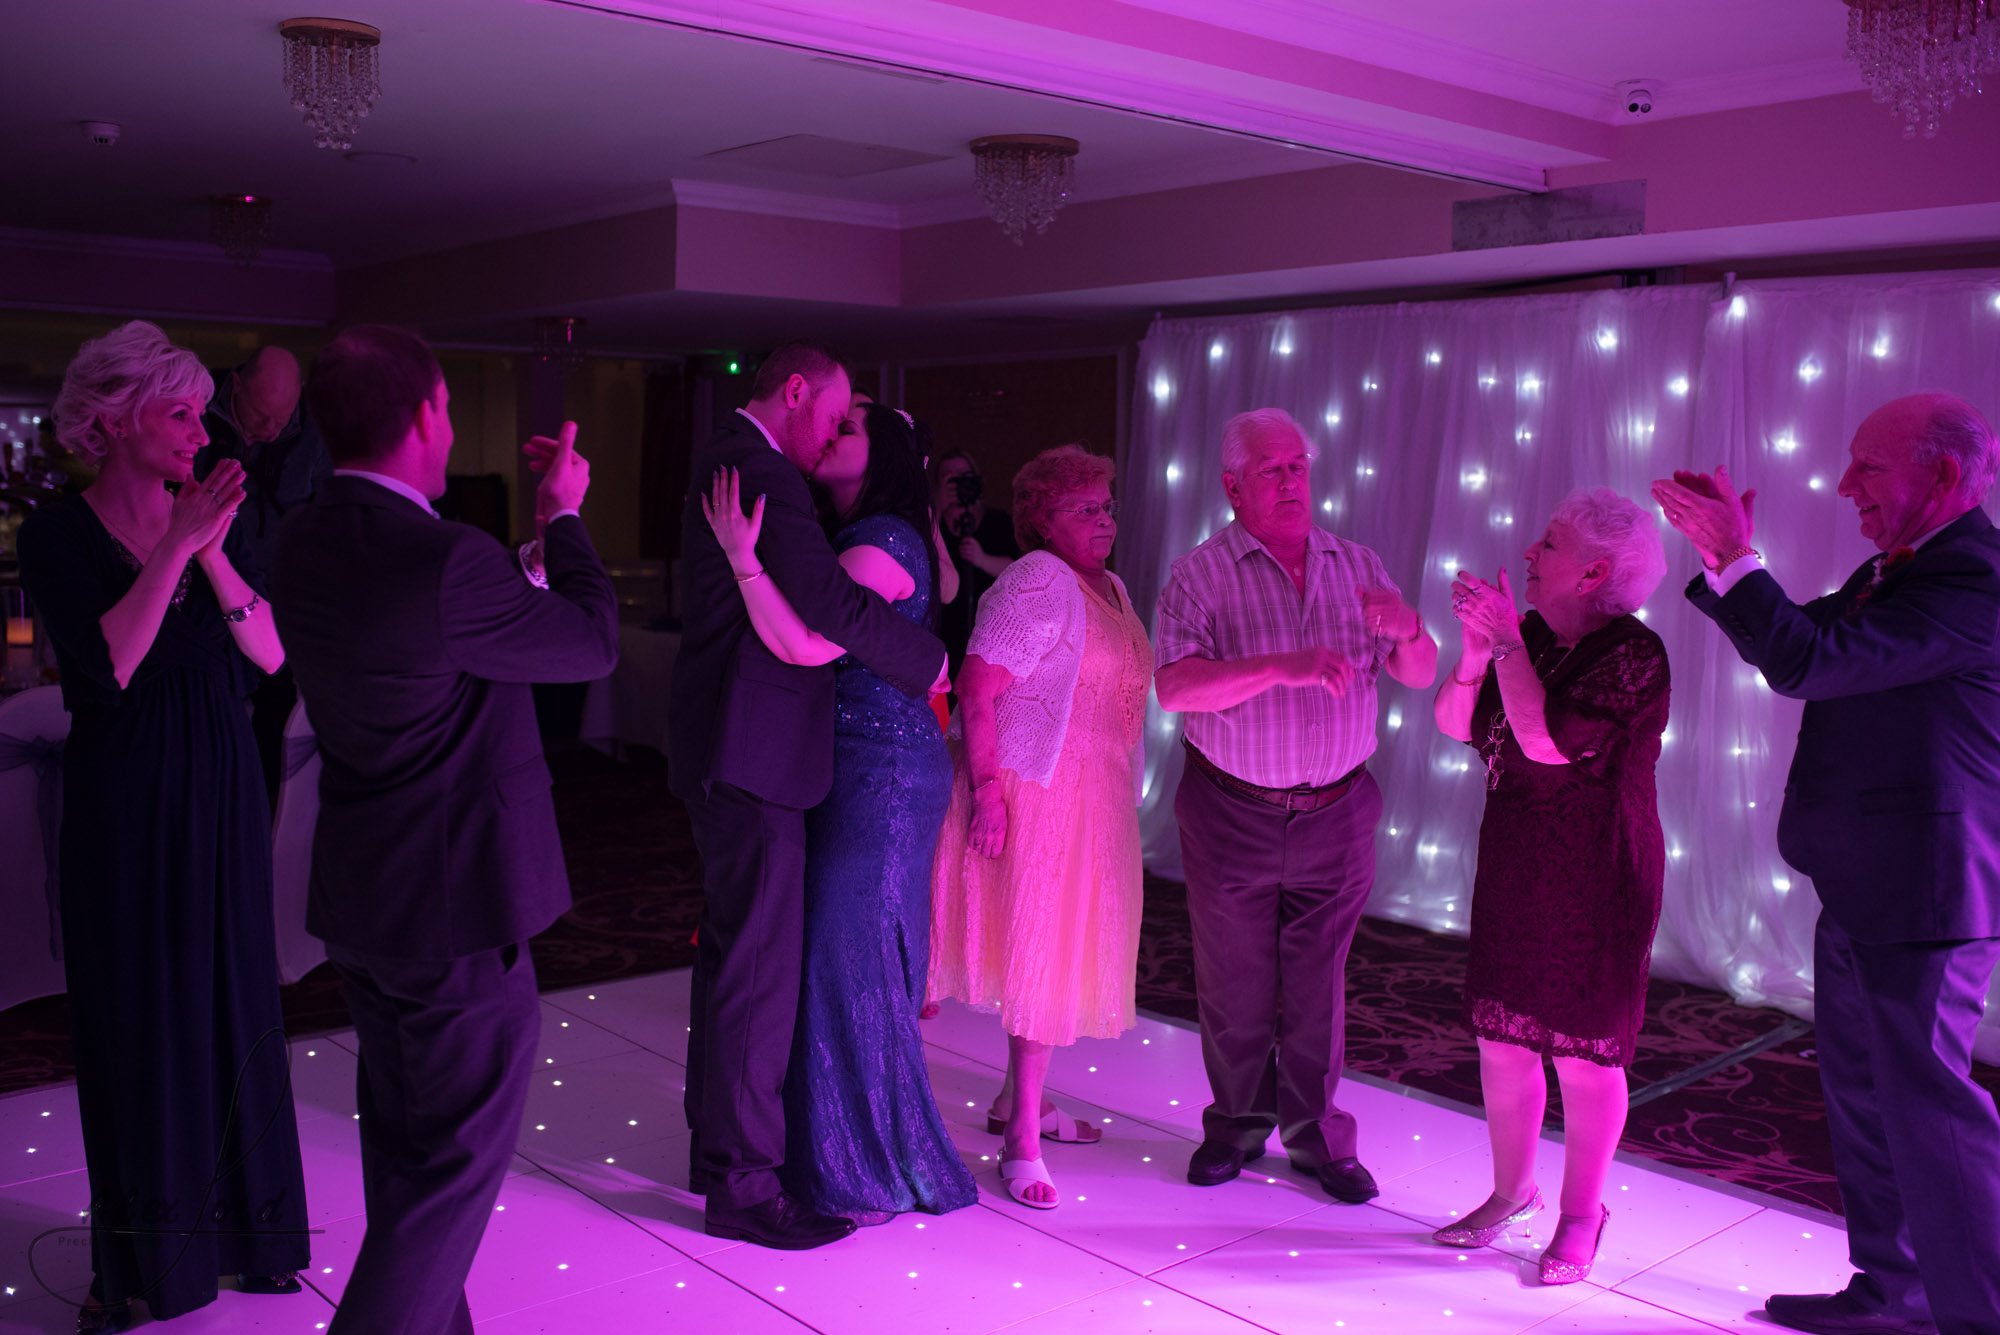 guests dancing on the packed dance floor